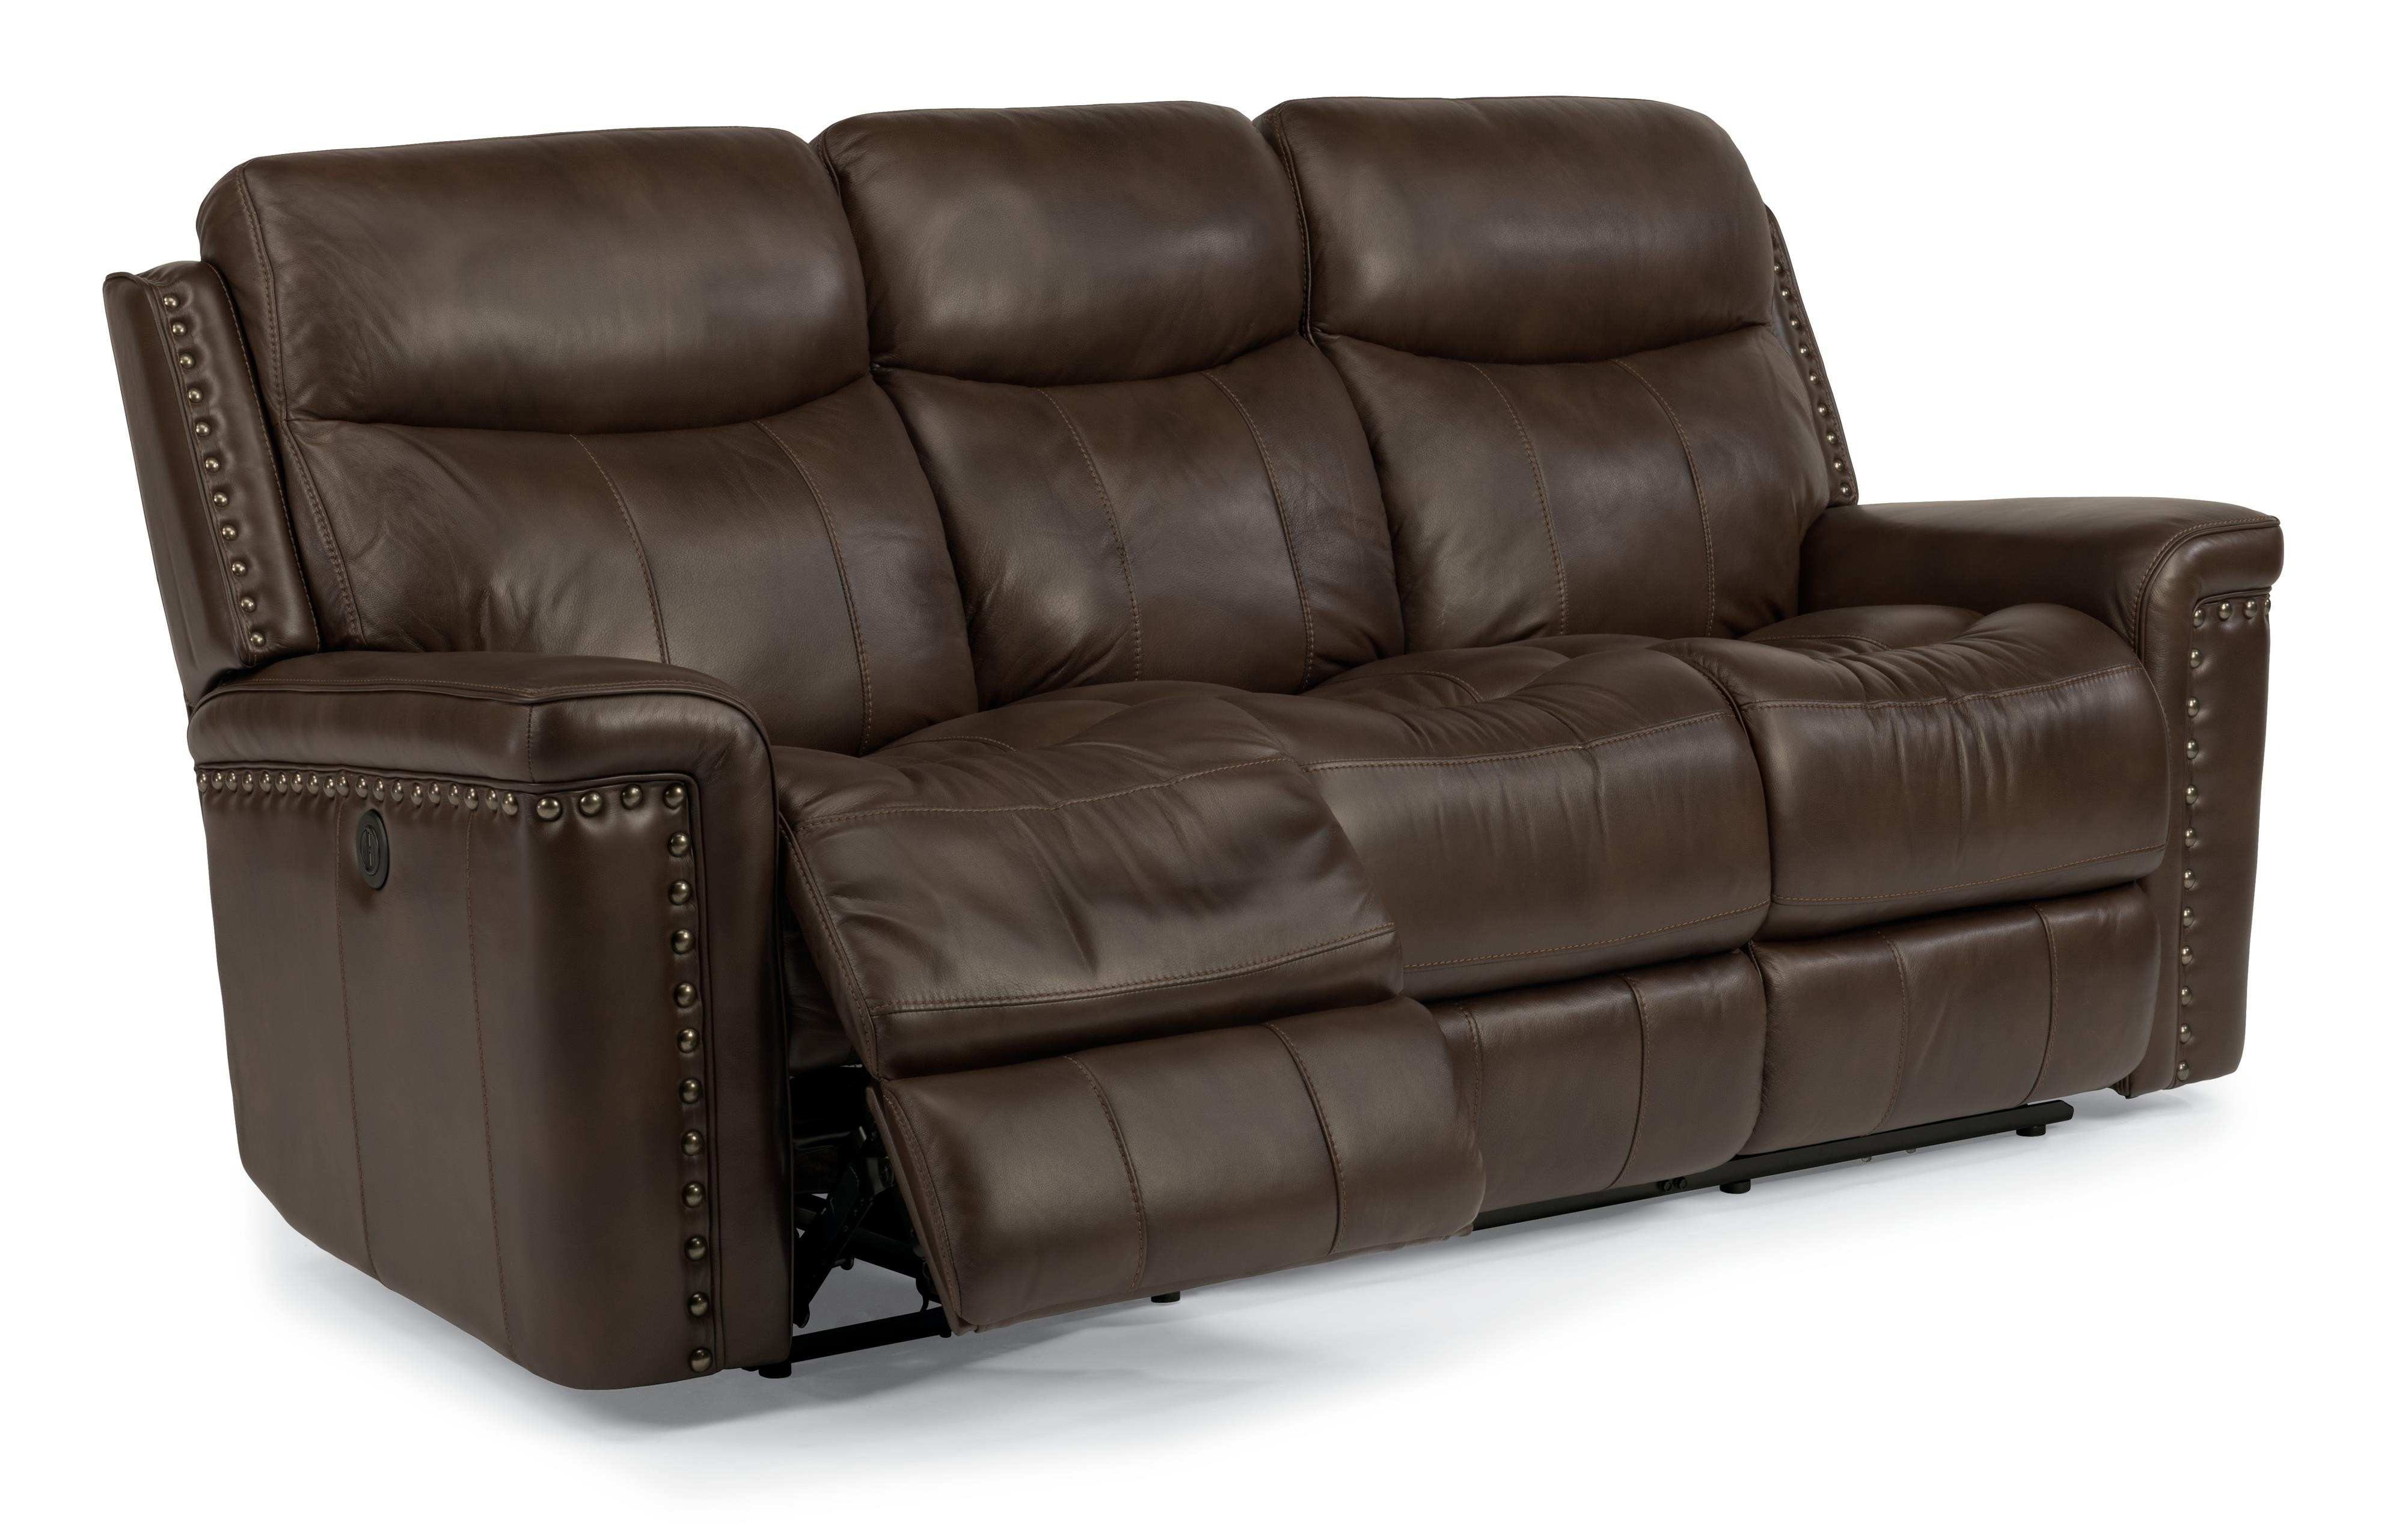 Leather Reclining Sofa With Nailhead Trim